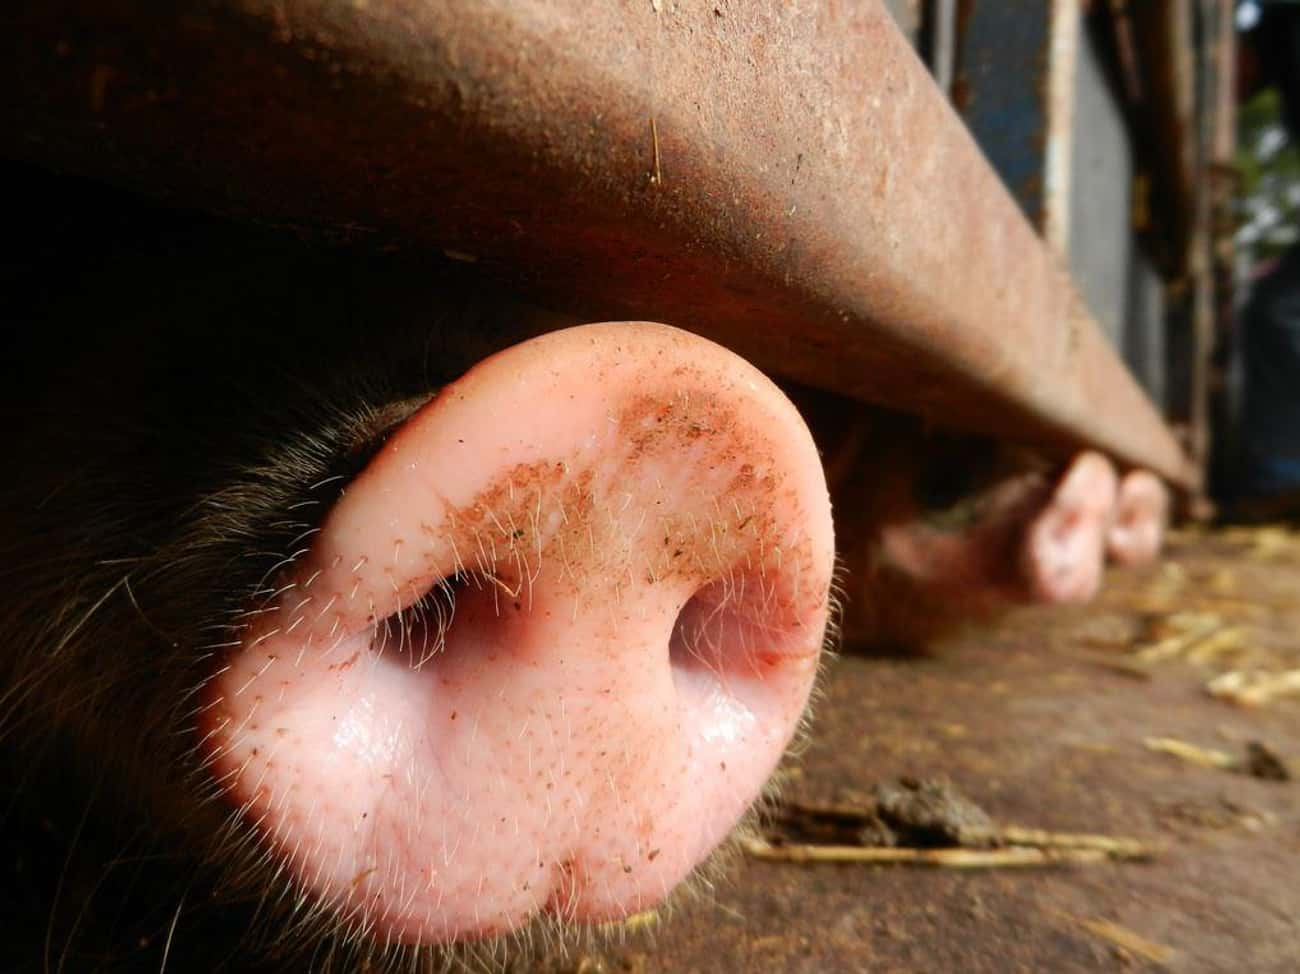 Pigs Have A Great Sense Of Sme is listed (or ranked) 4 on the list 17 Fun Facts You Should Know About Pigs That'll Make You Appreciate Them Even More